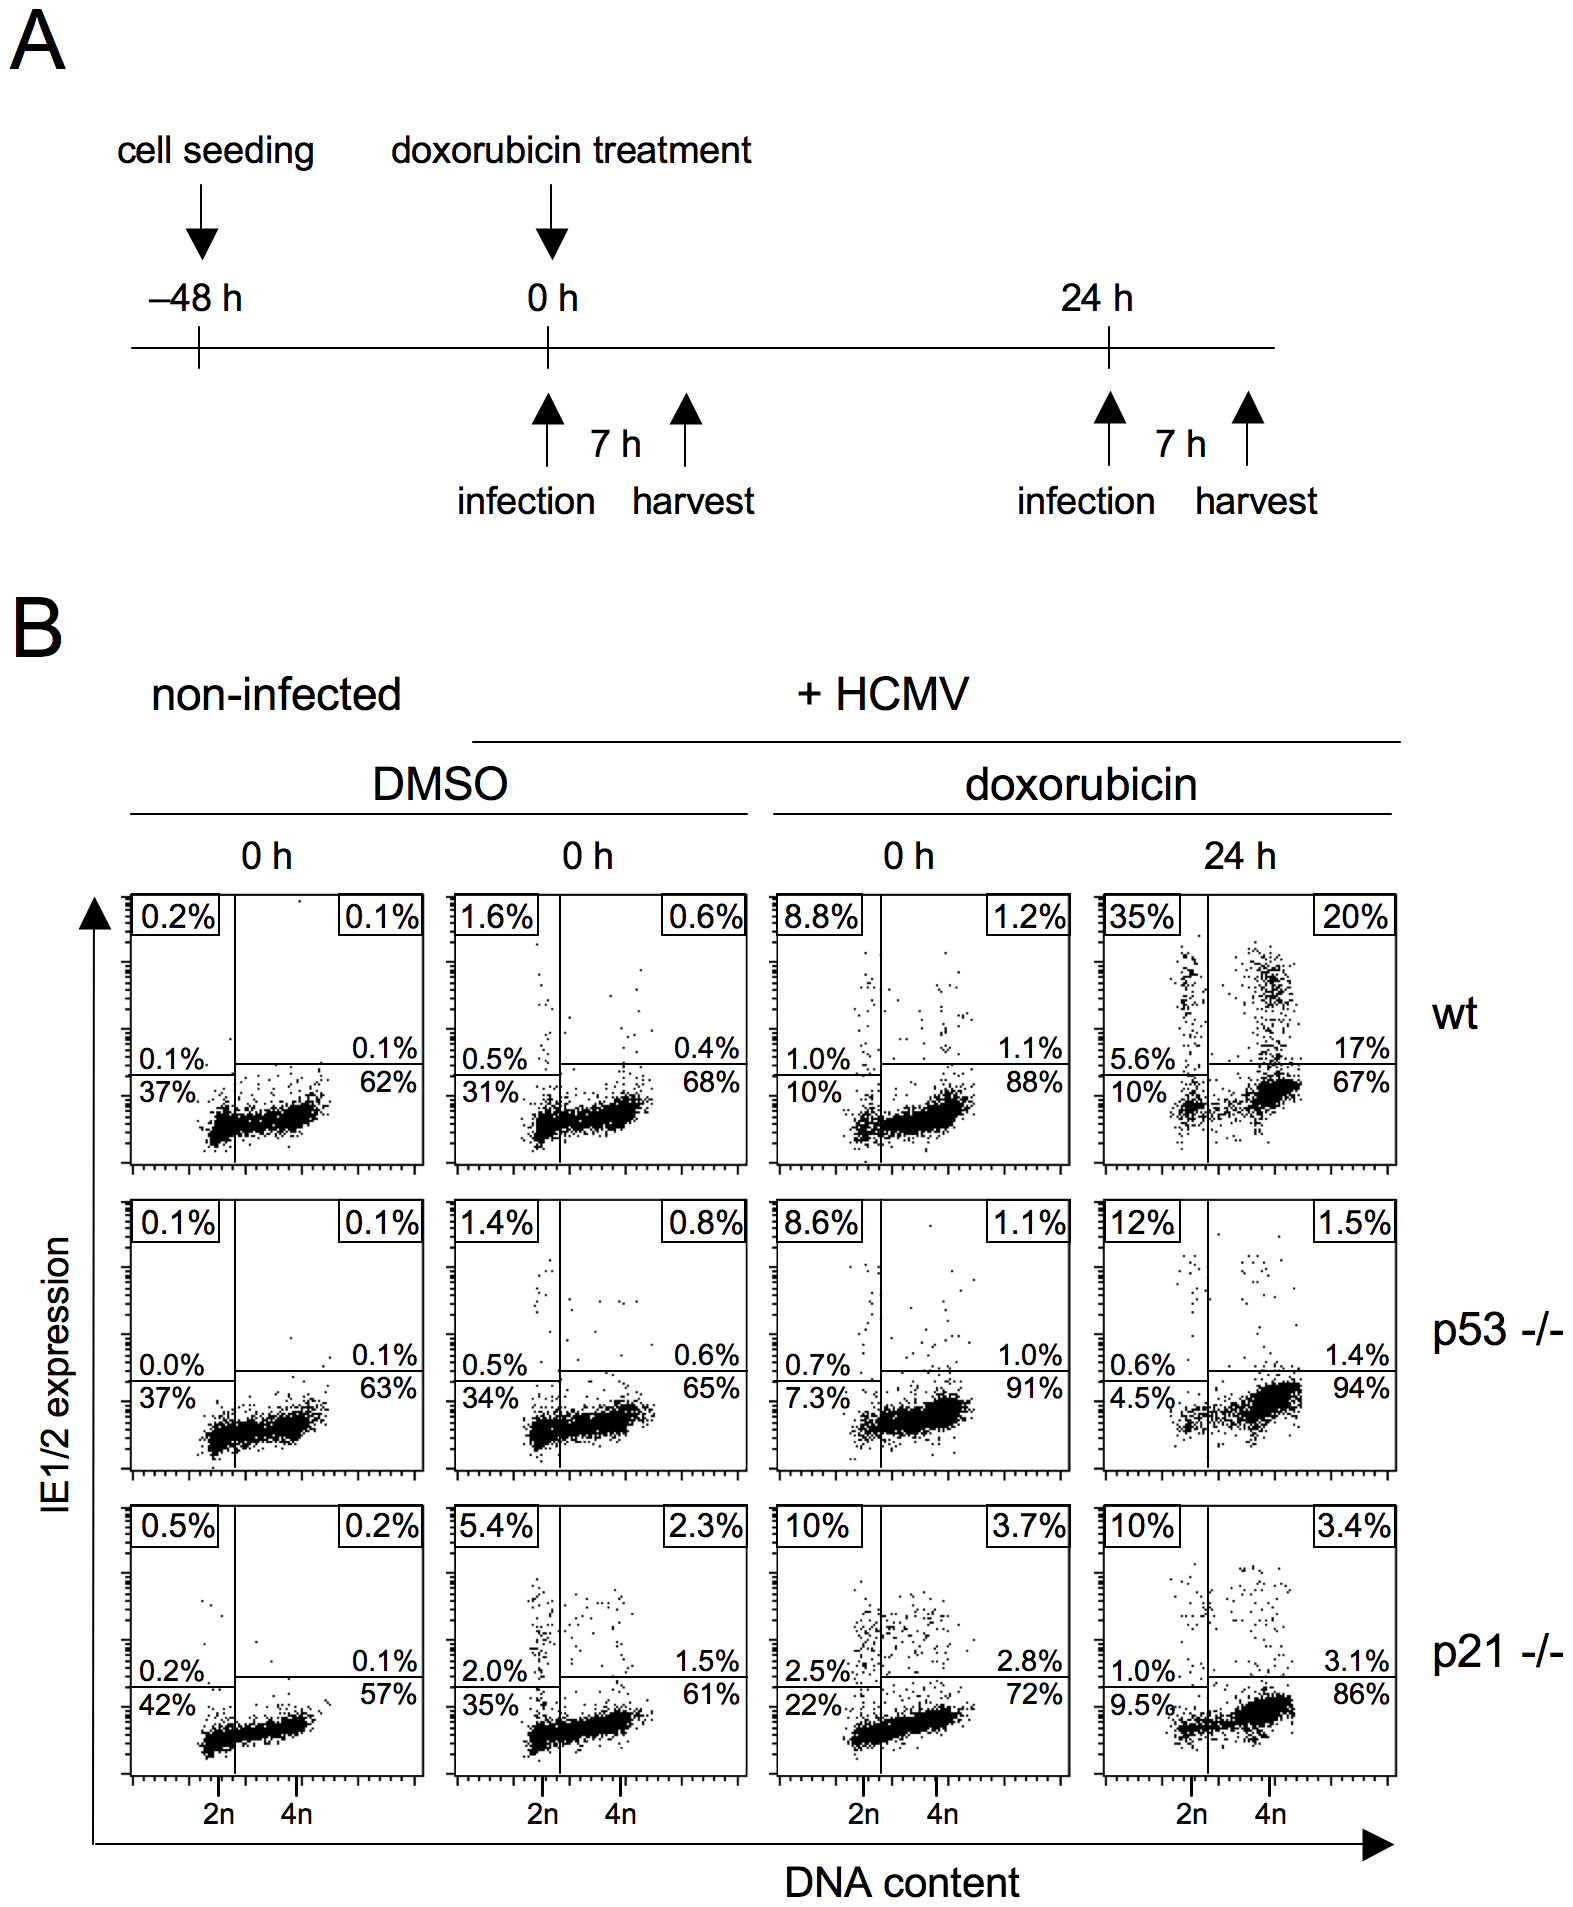 DNA damage-dependent rescue of MIE gene expression in S/G2 depends on the CDK inhibitor p21.